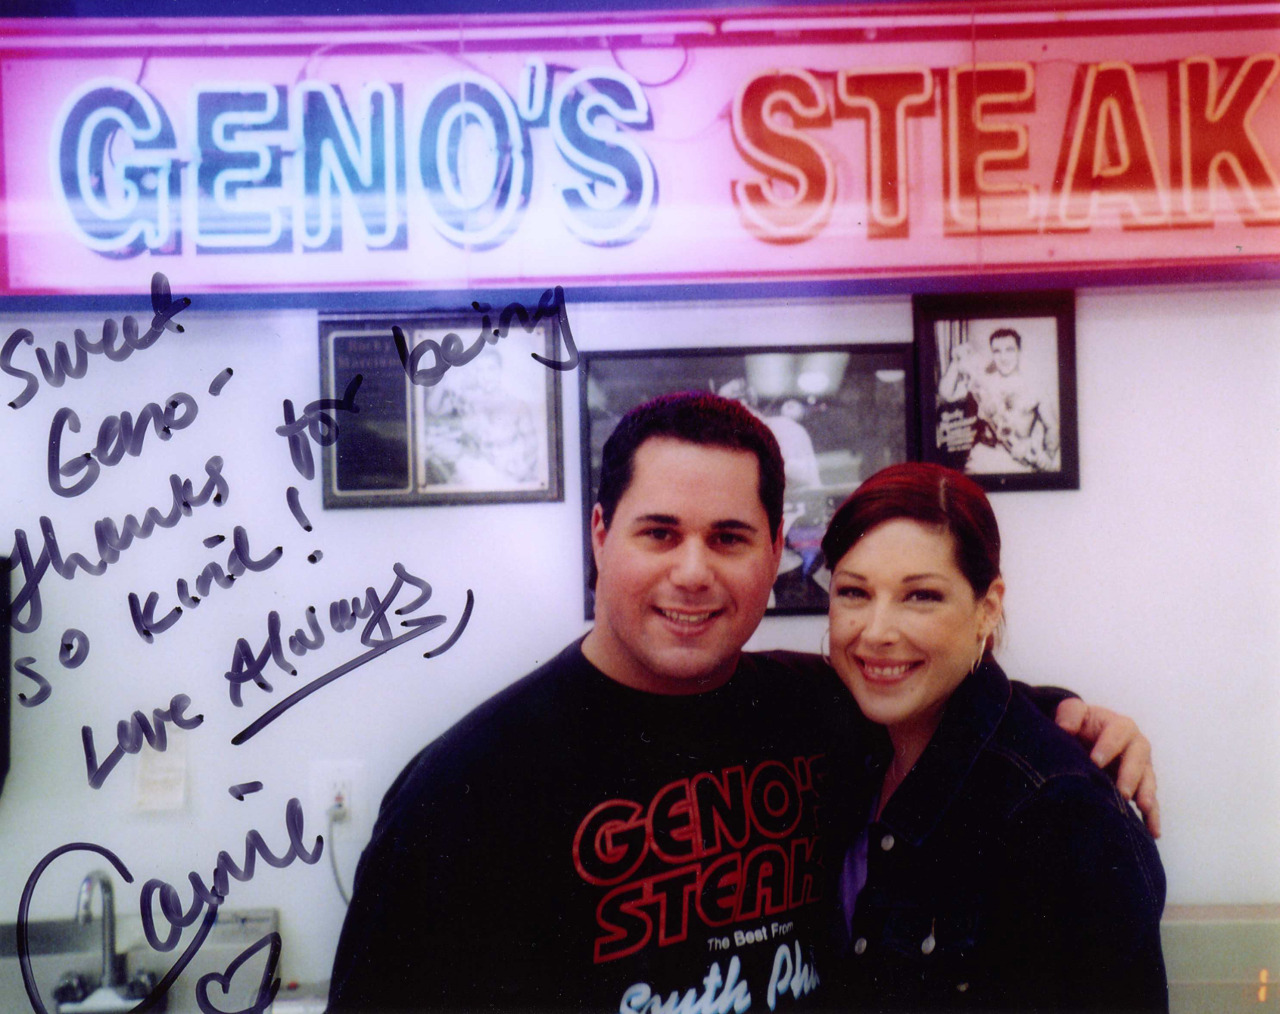 Carnie Wilson and Geno